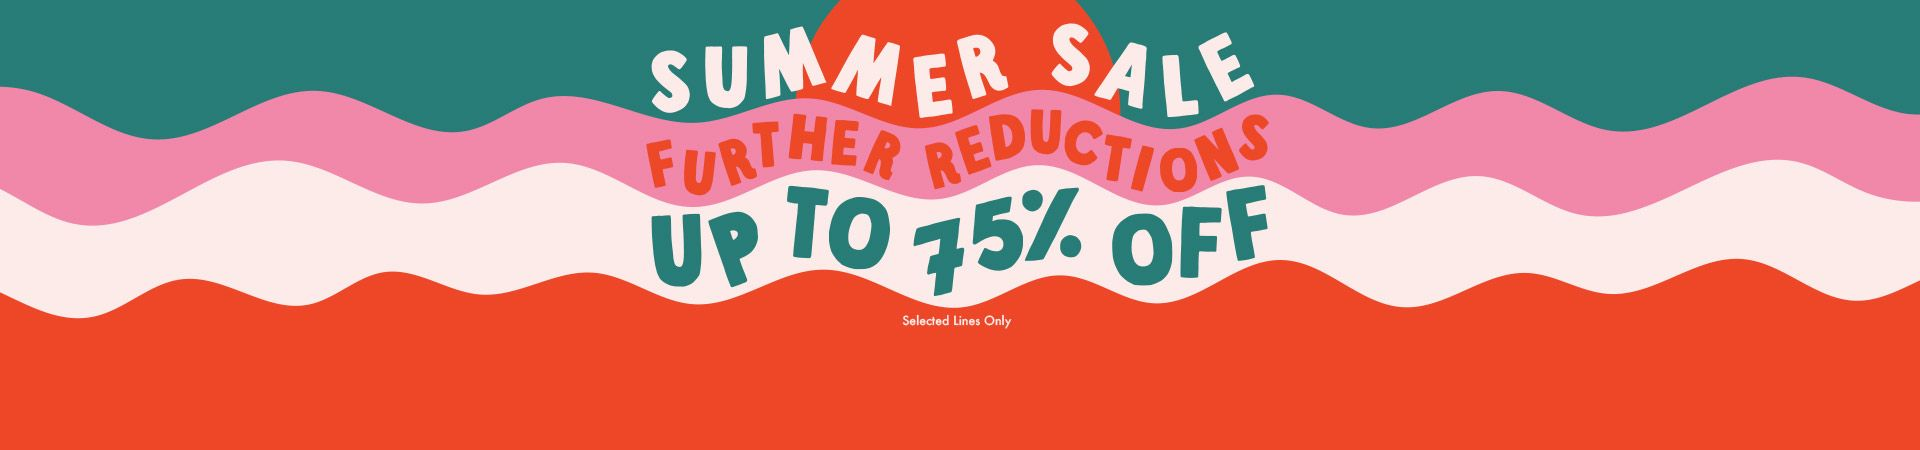 Save up to 75% off on selected lines at Urban Outfitters.